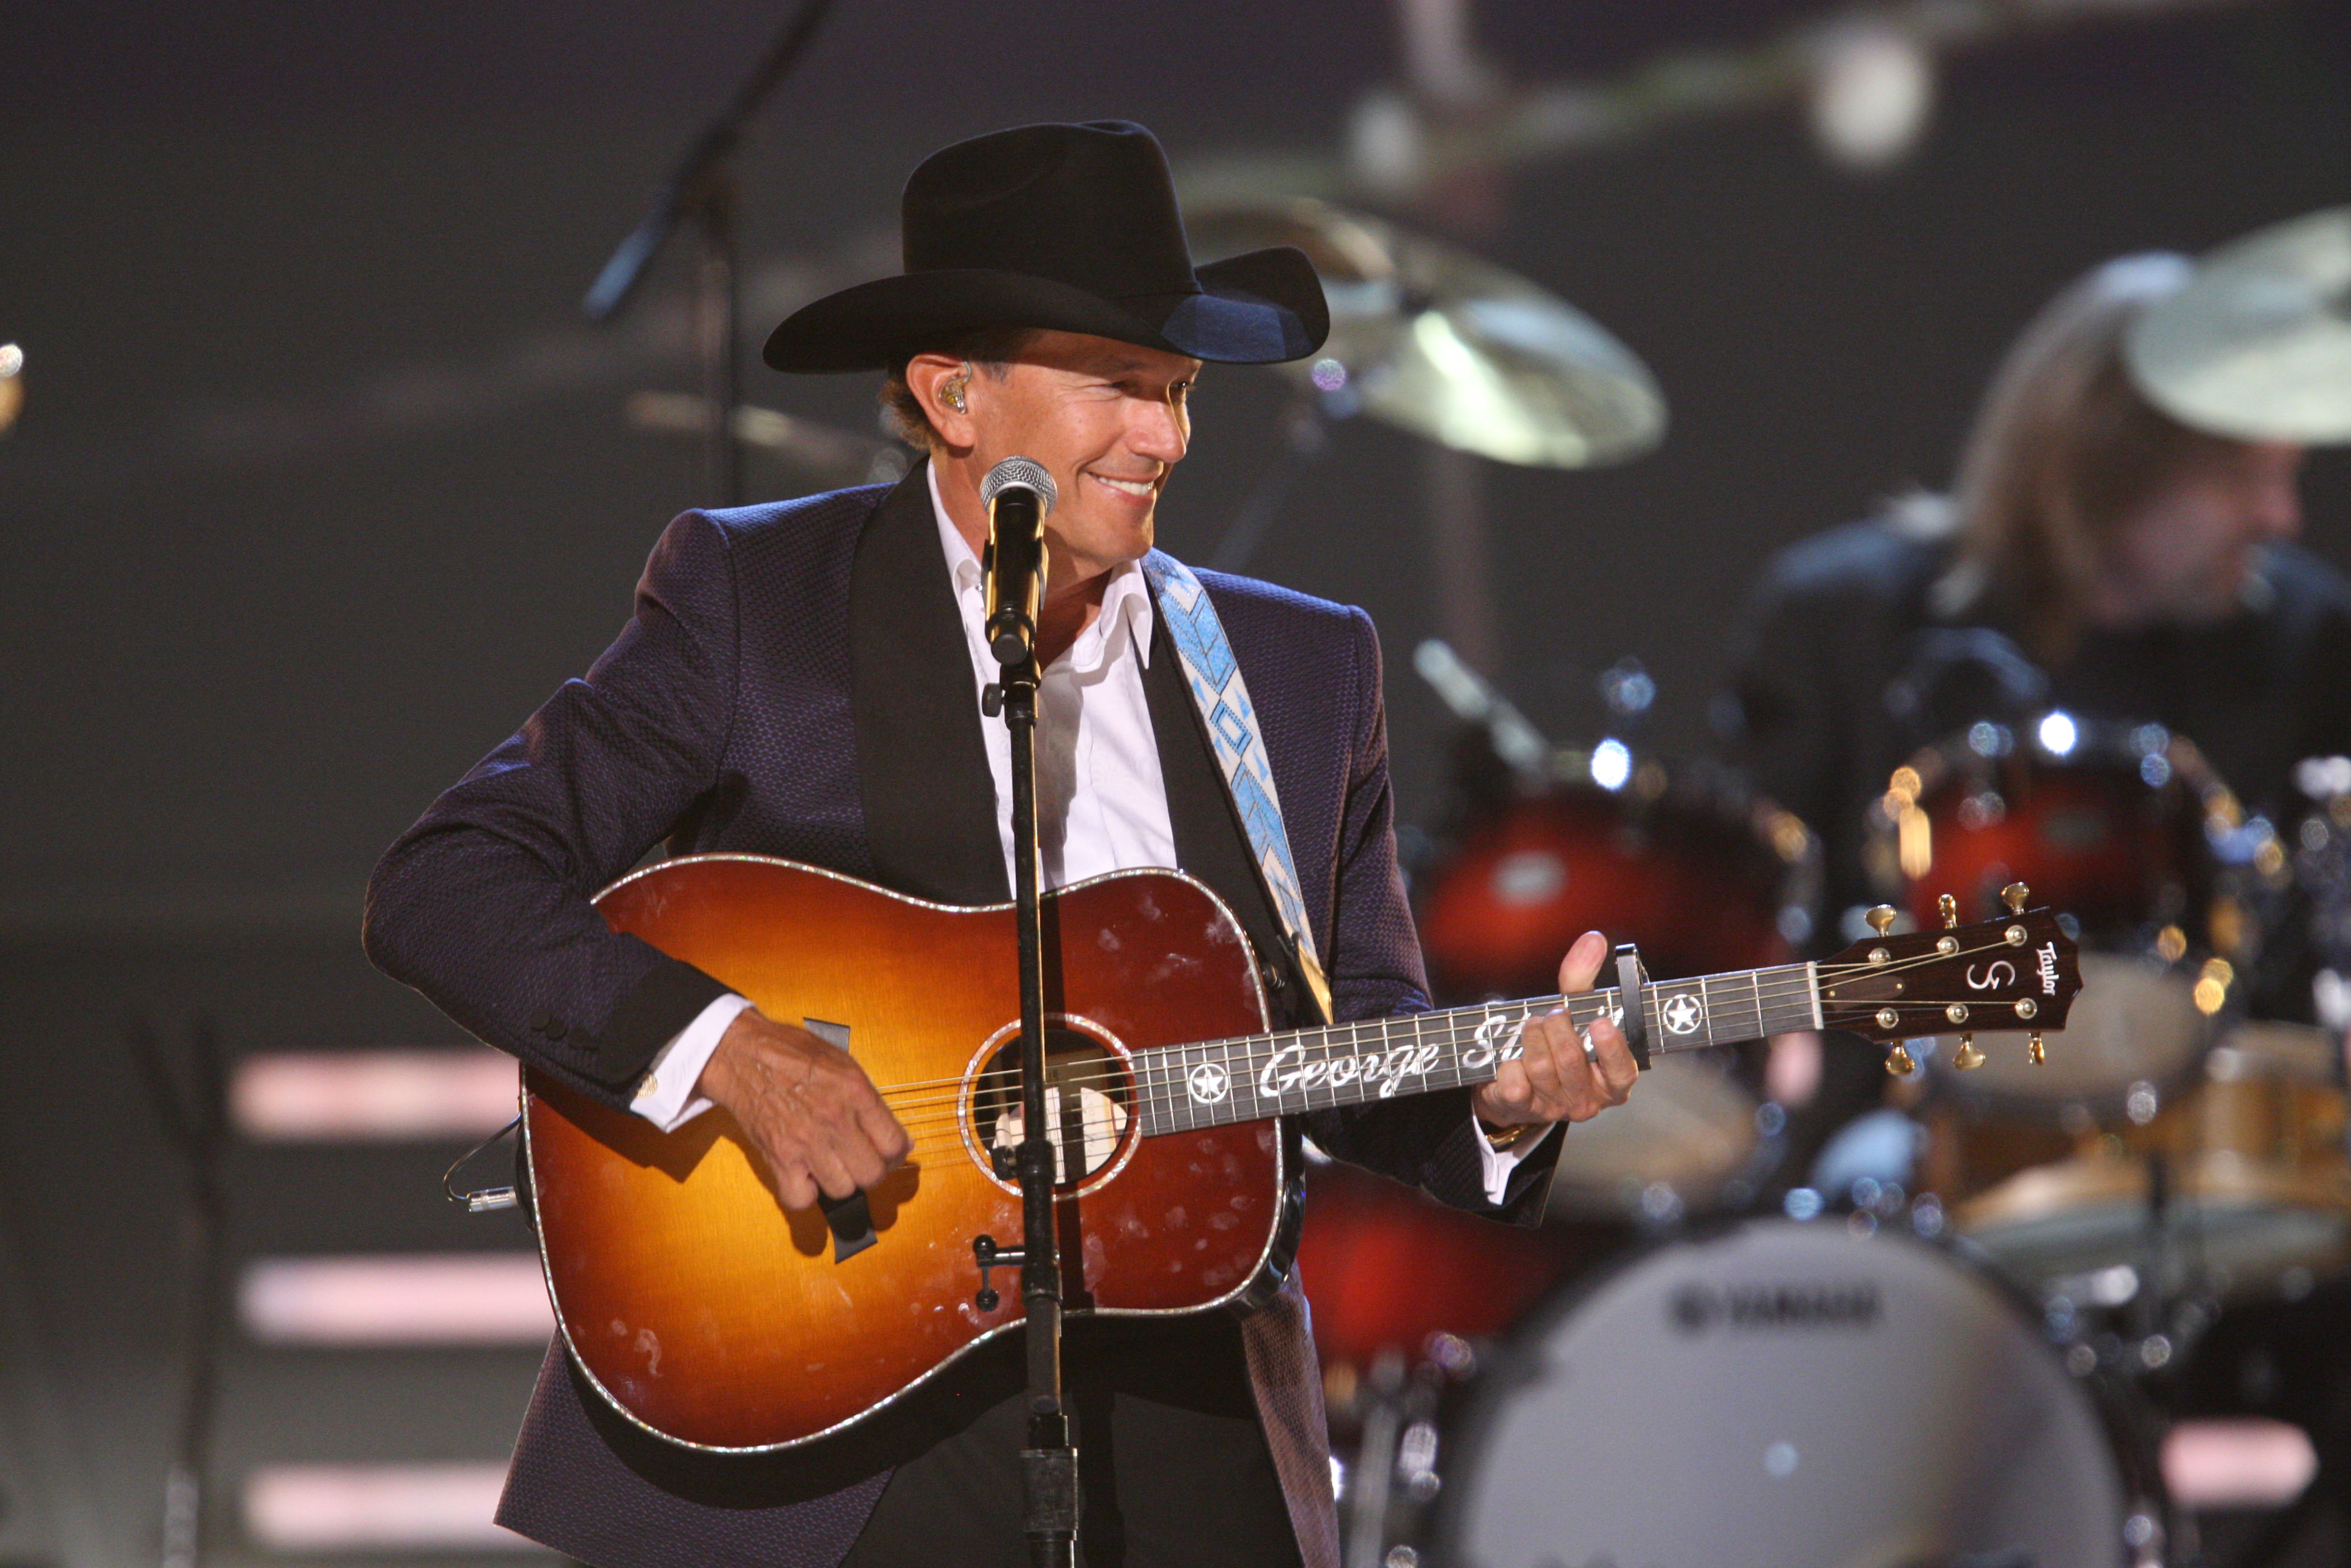 George Strait scheduled to perform on the 48th annual ACM Awards